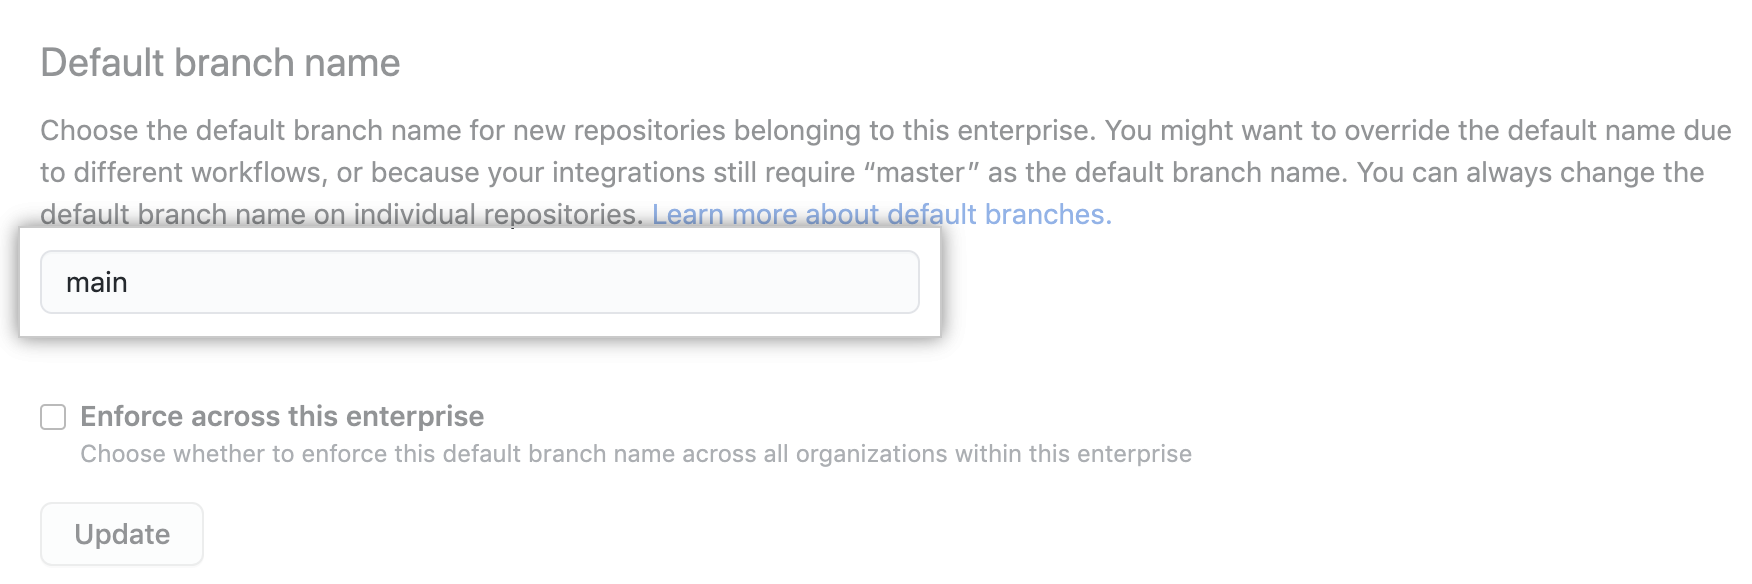 Text box for entering default branch name